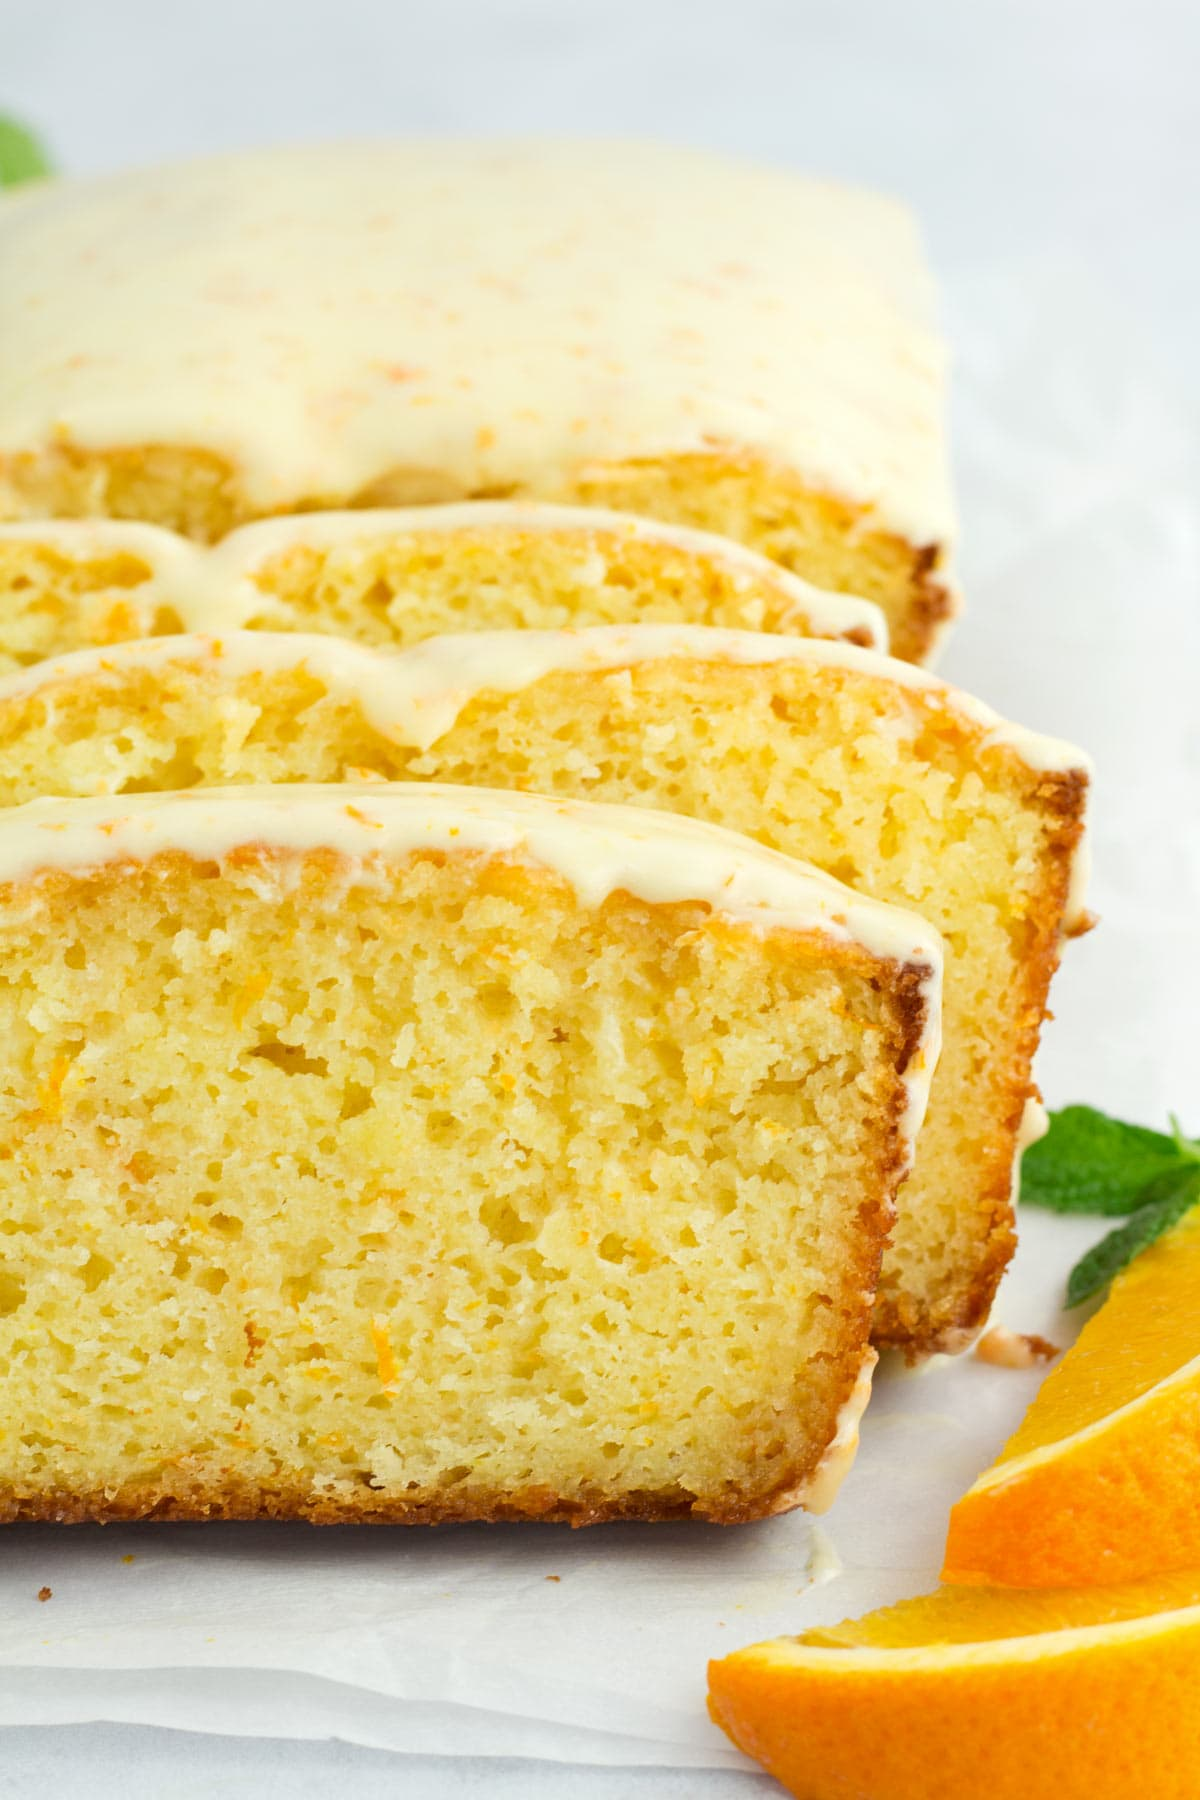 Slices of loaf cake with fresh orange icing on top.